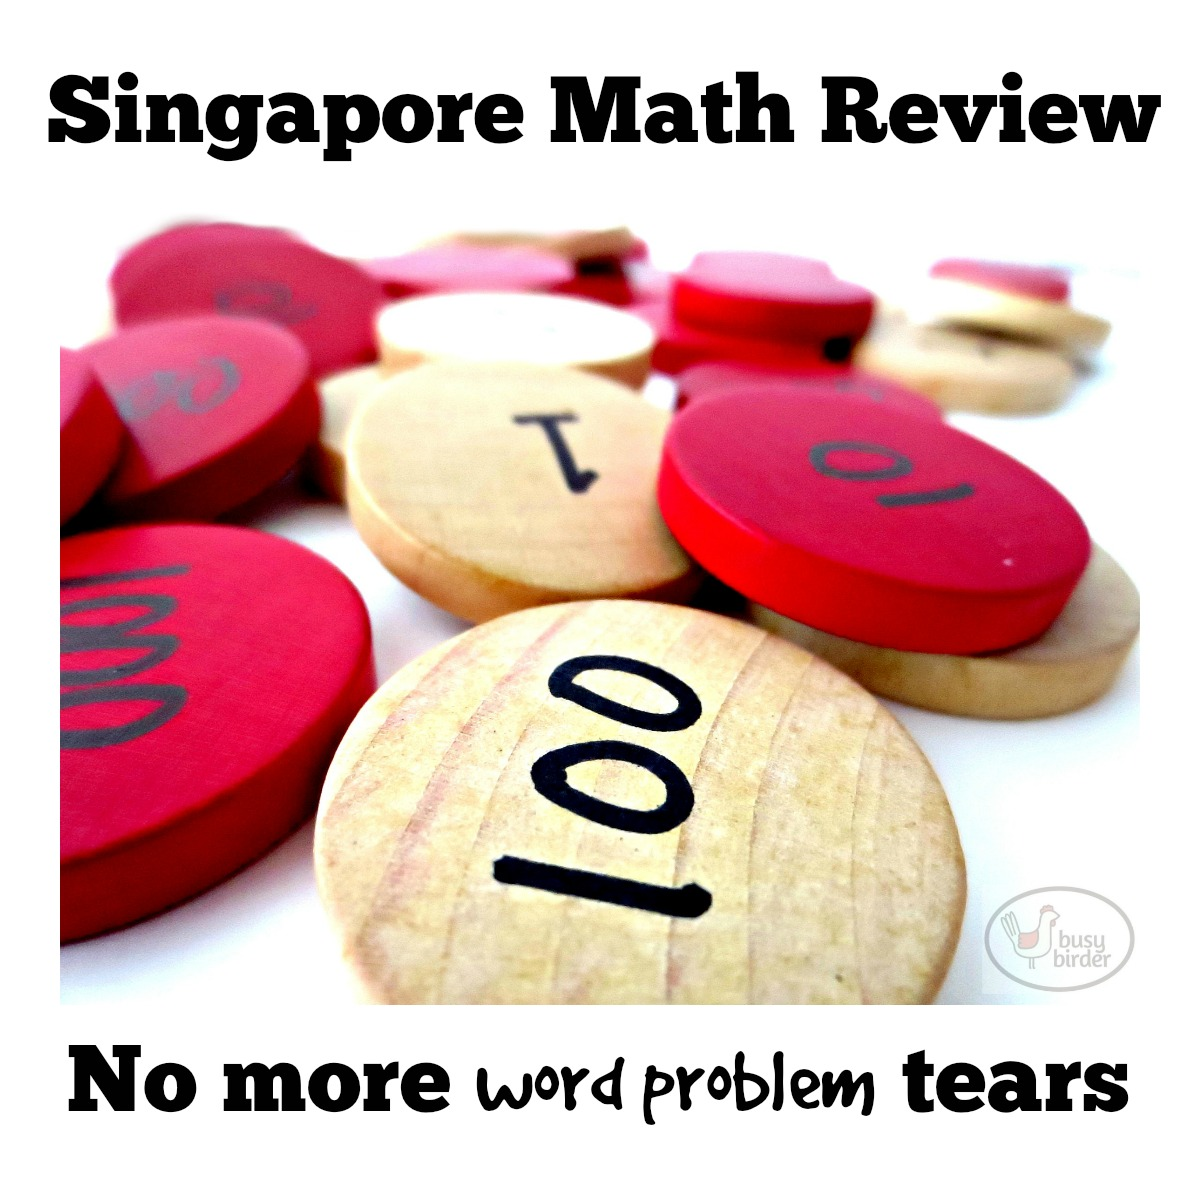 Review of Singapore Math: No more tears for word problems